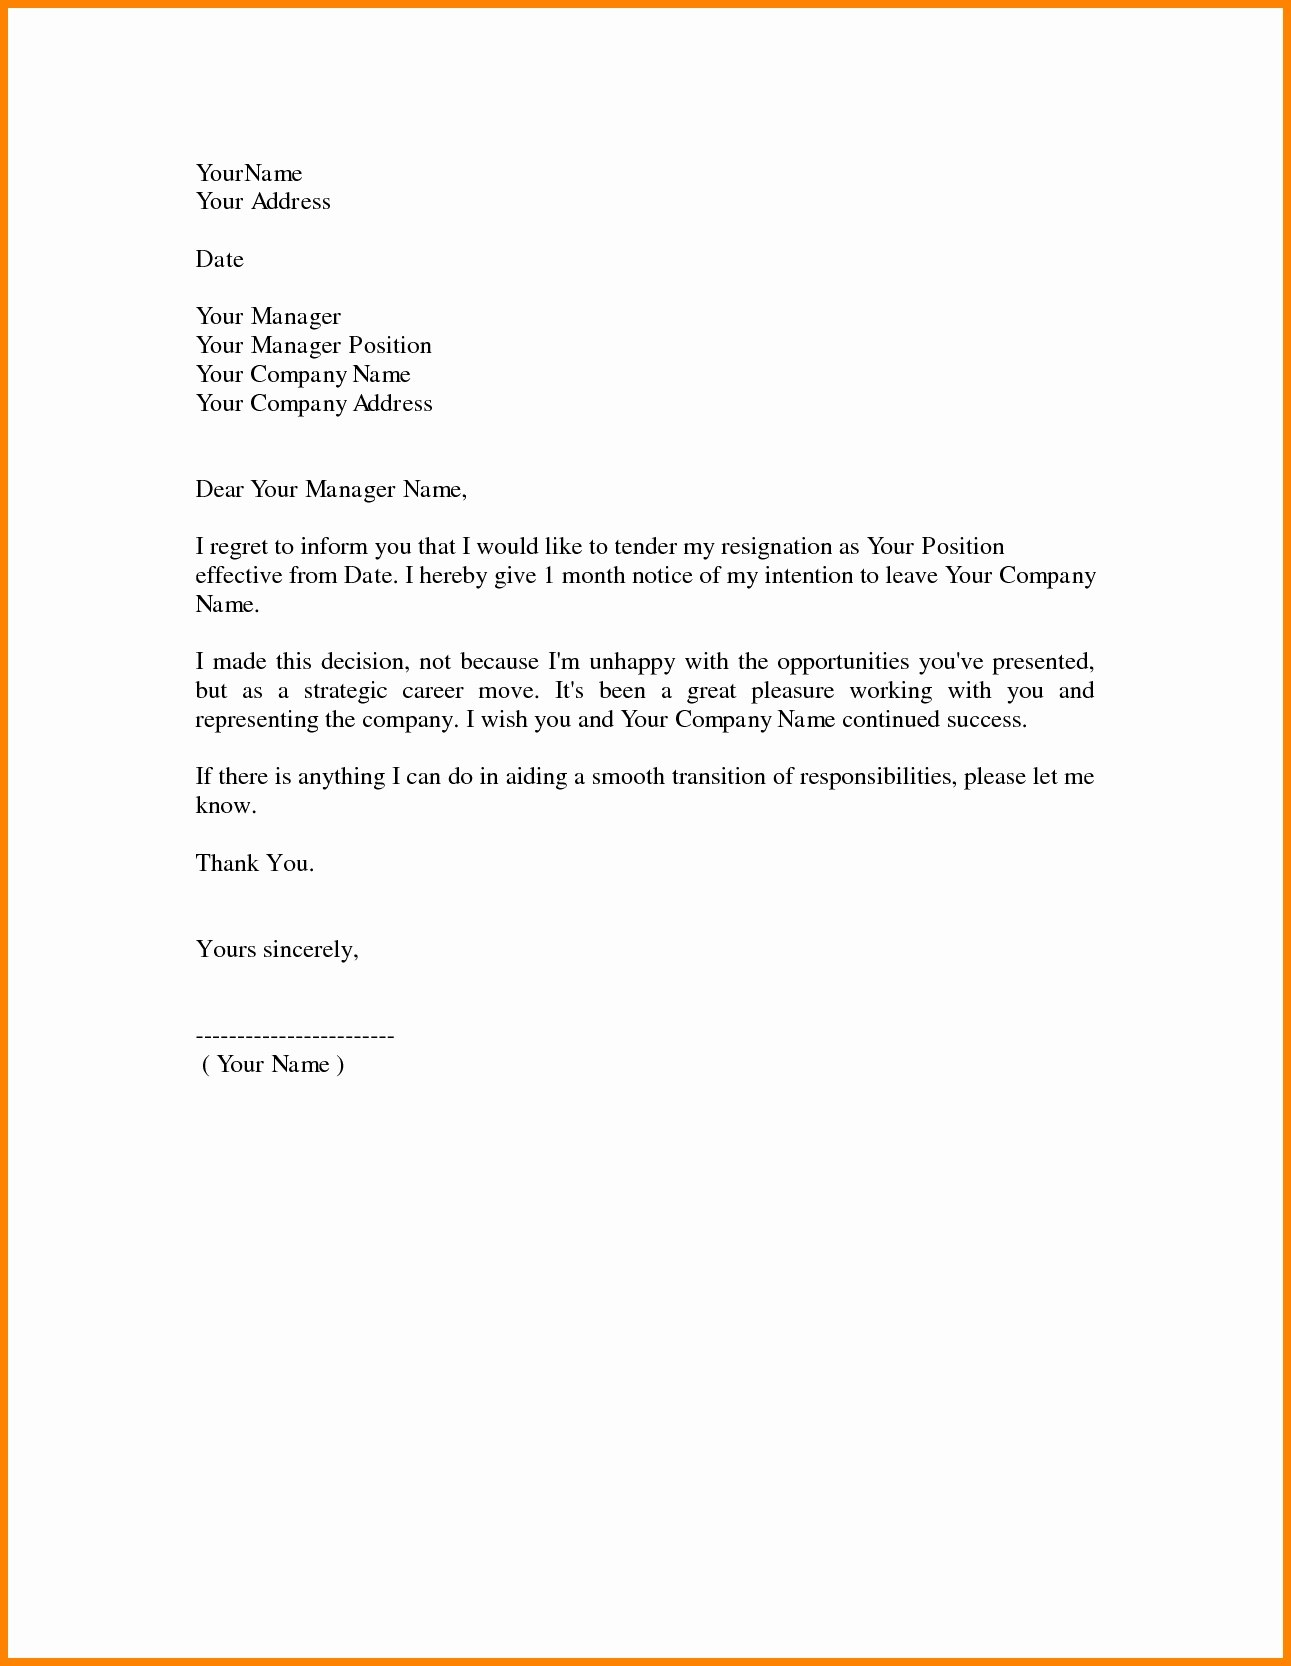 Sample Professional Letter Format  Dayinblackandwhite For Template For Resignation Letter Singapore